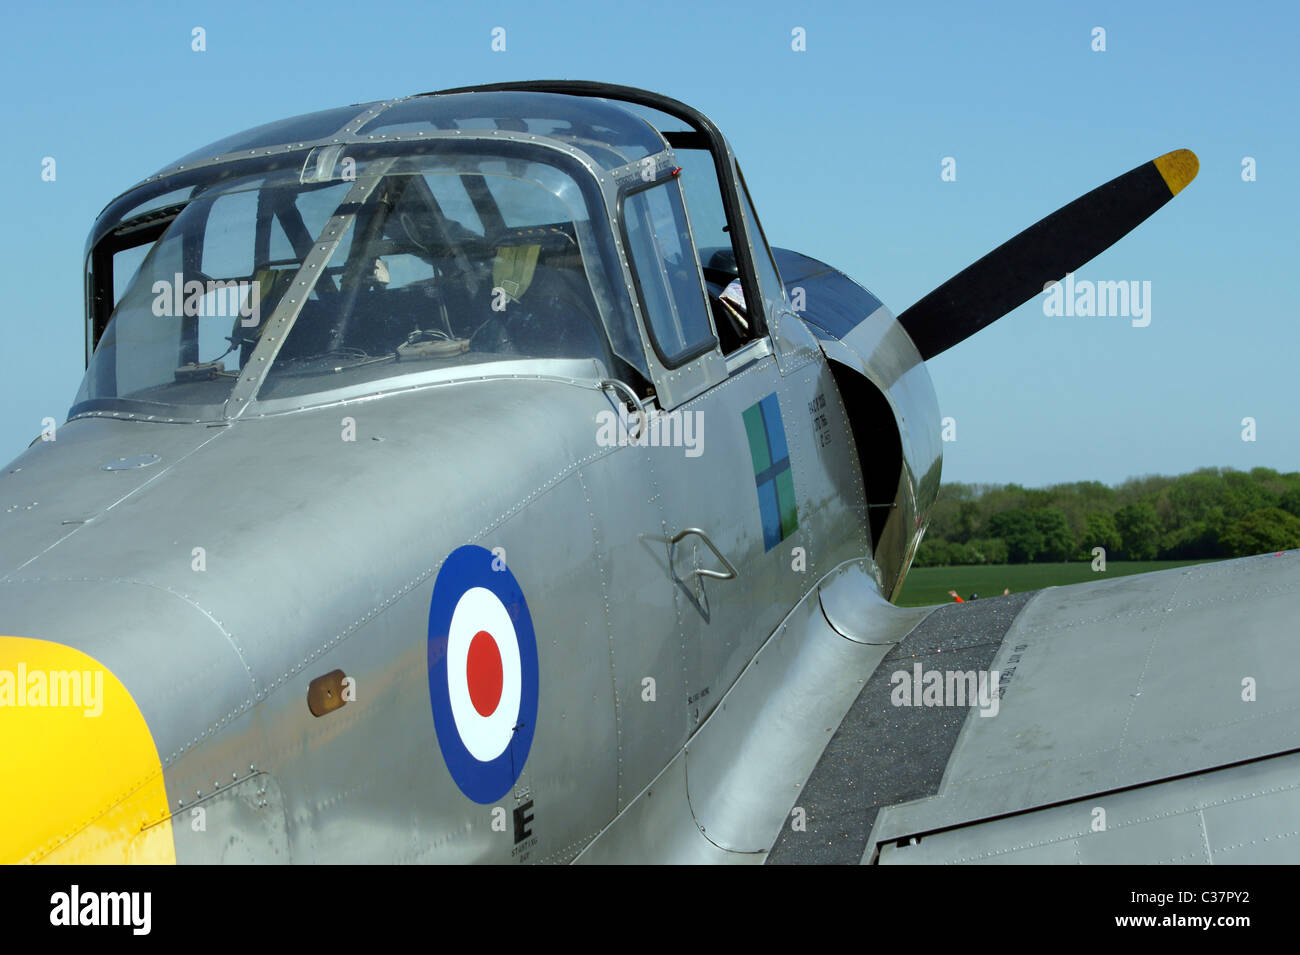 PERCIVAL P56 PISTON PROVOST T.1. RAF TWO SEAT SIDE BY SIDE TRAINER - Stock Image